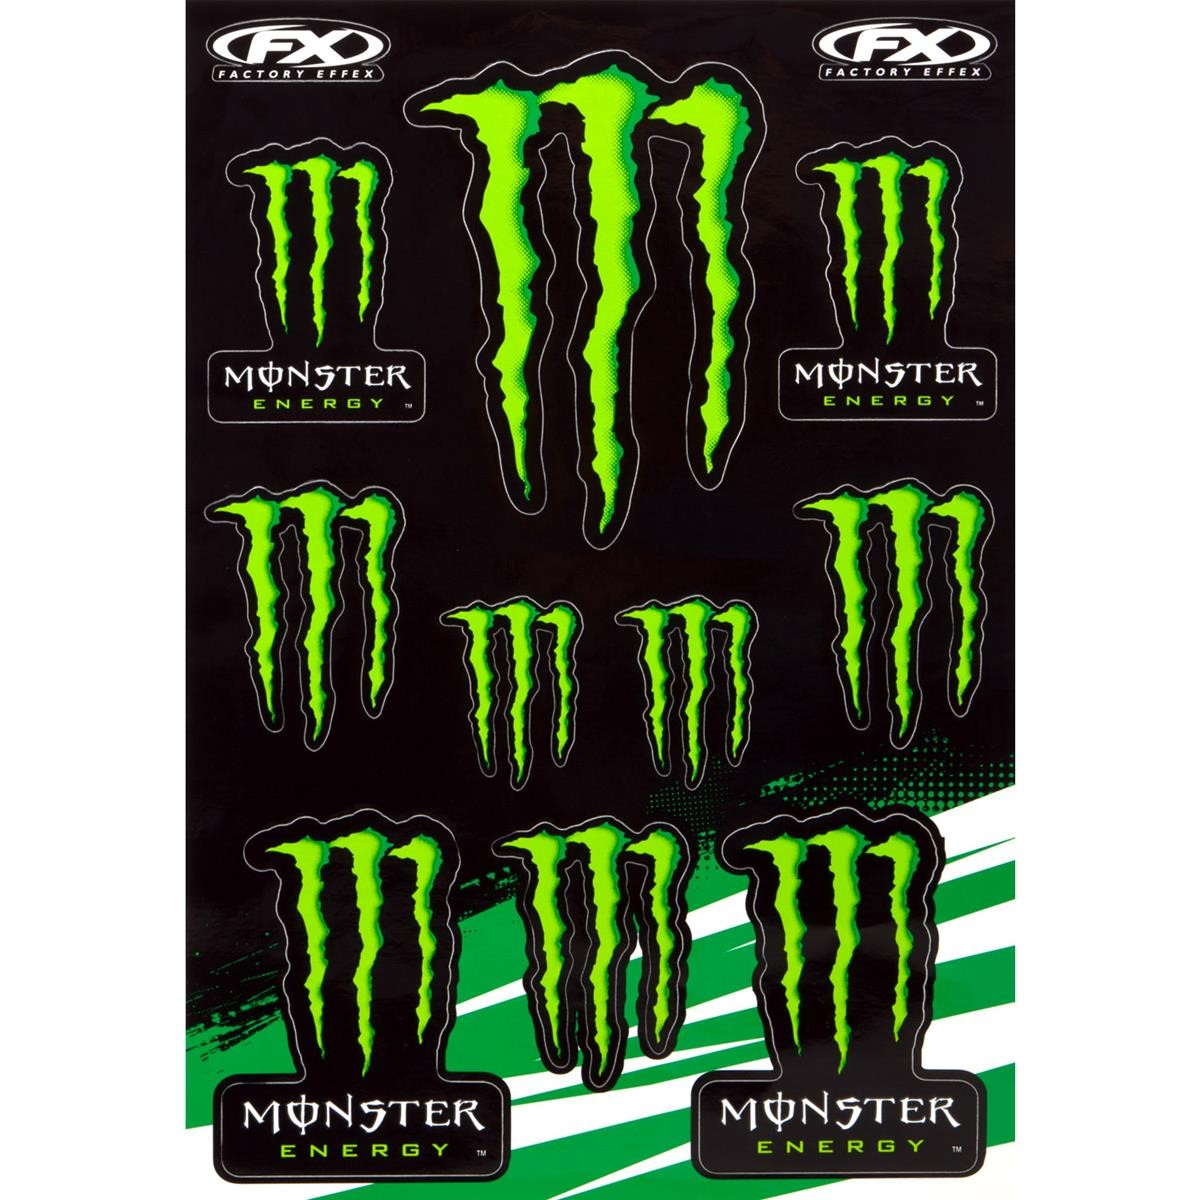 monster energy aufkleber namme deine shoppingwelt. Black Bedroom Furniture Sets. Home Design Ideas